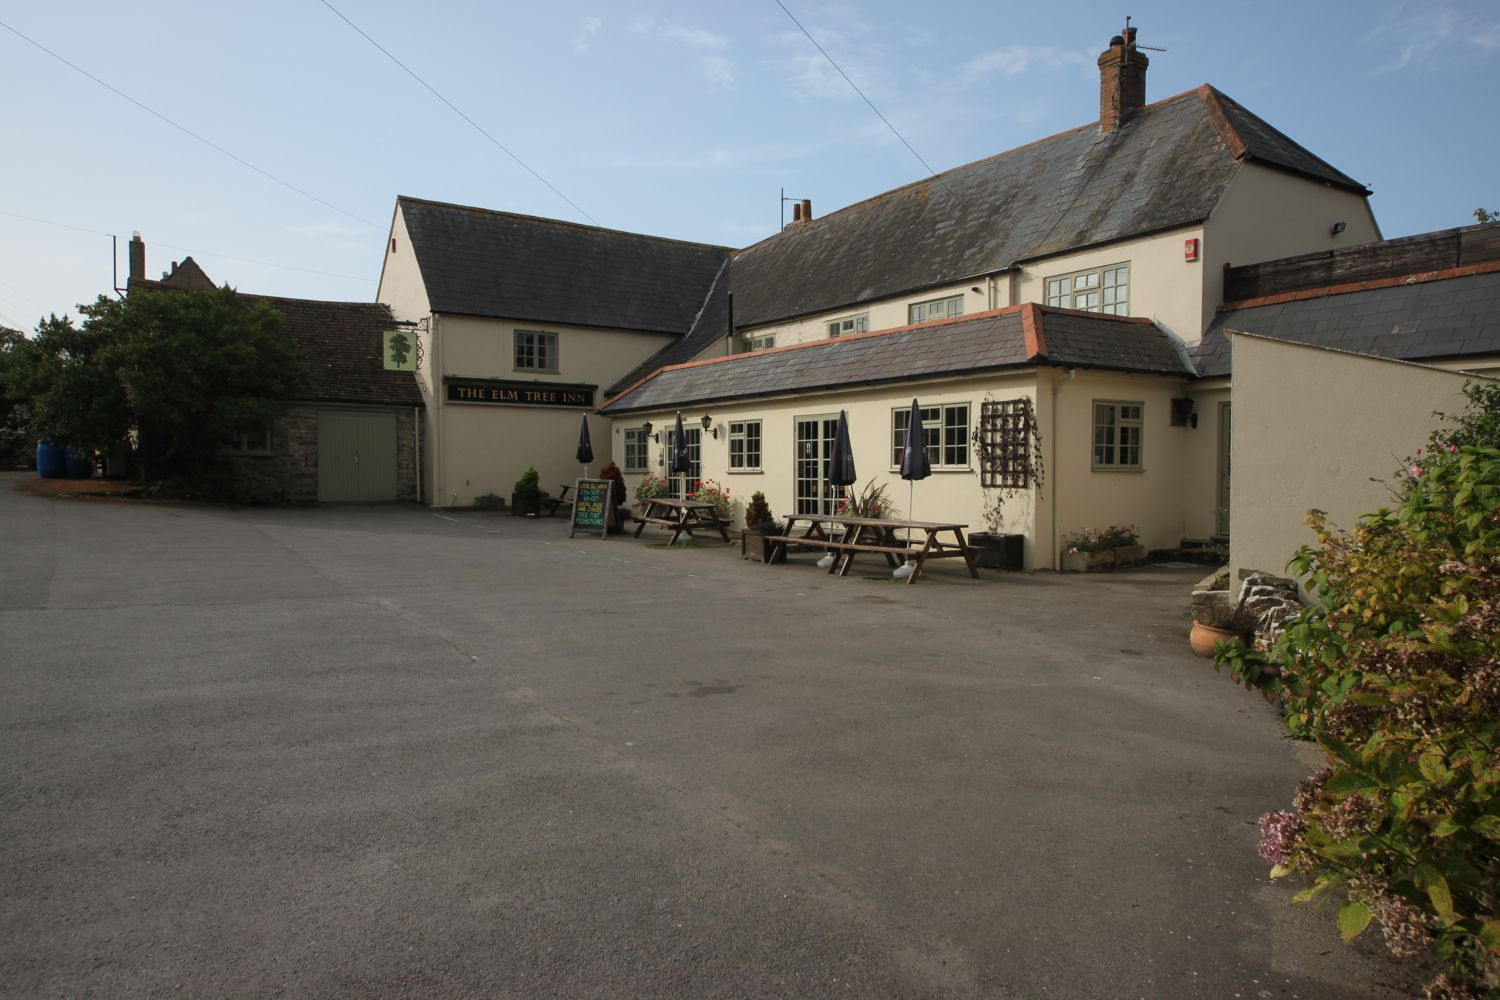 elm tree inn